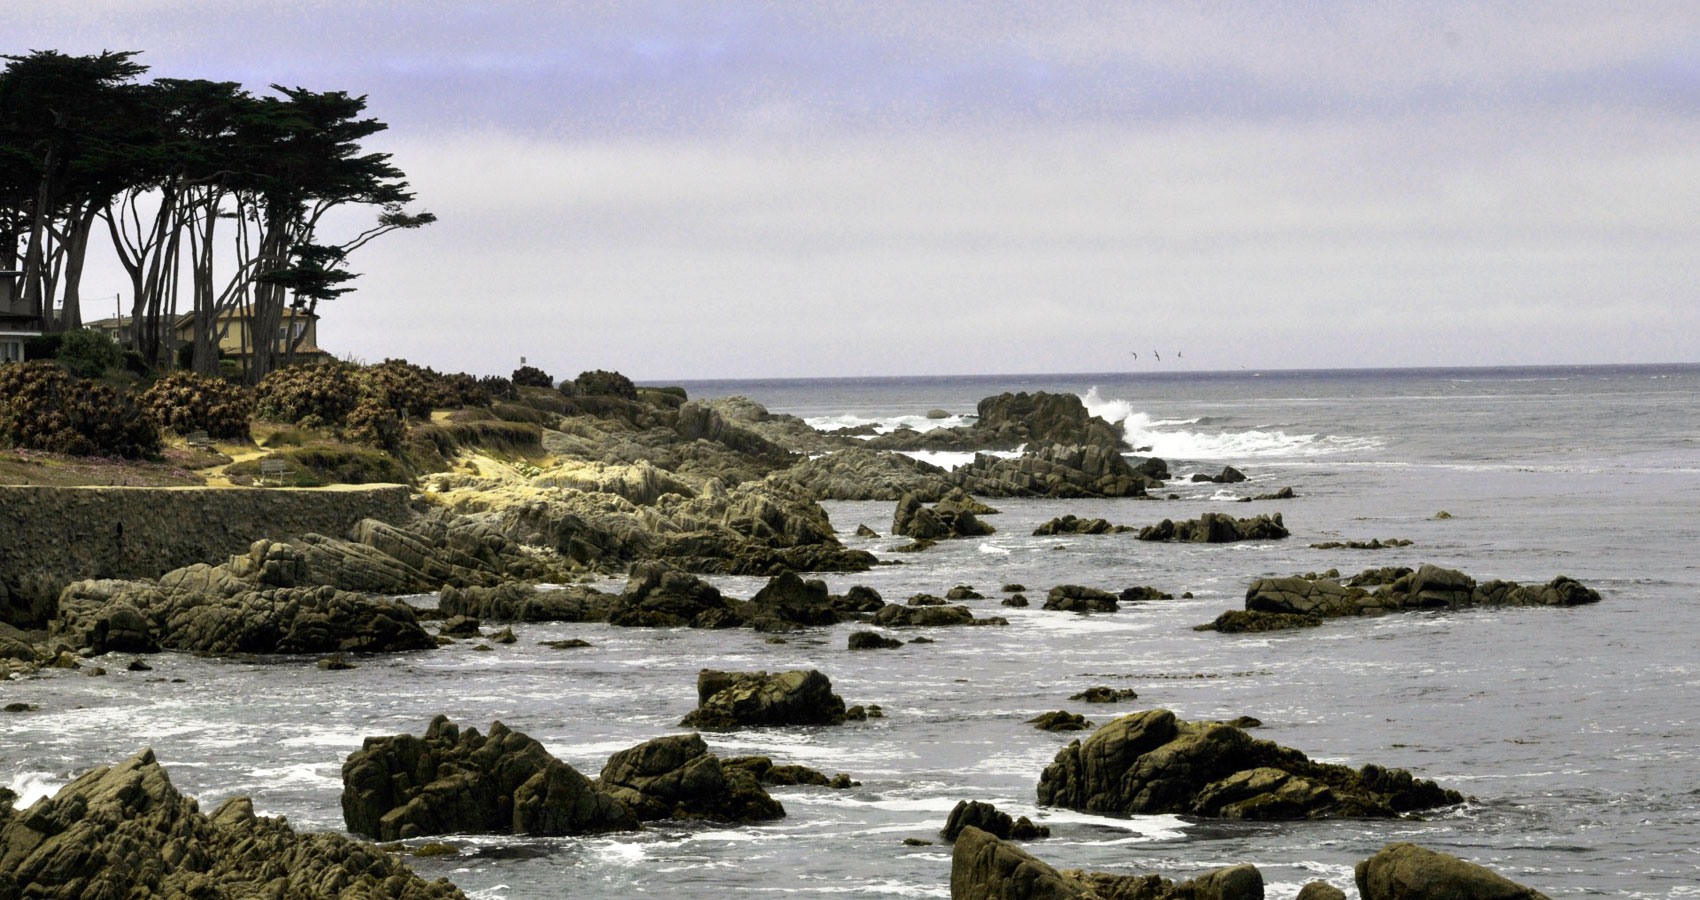 Monterey, a poem written by TM Arko at Spillwords.com